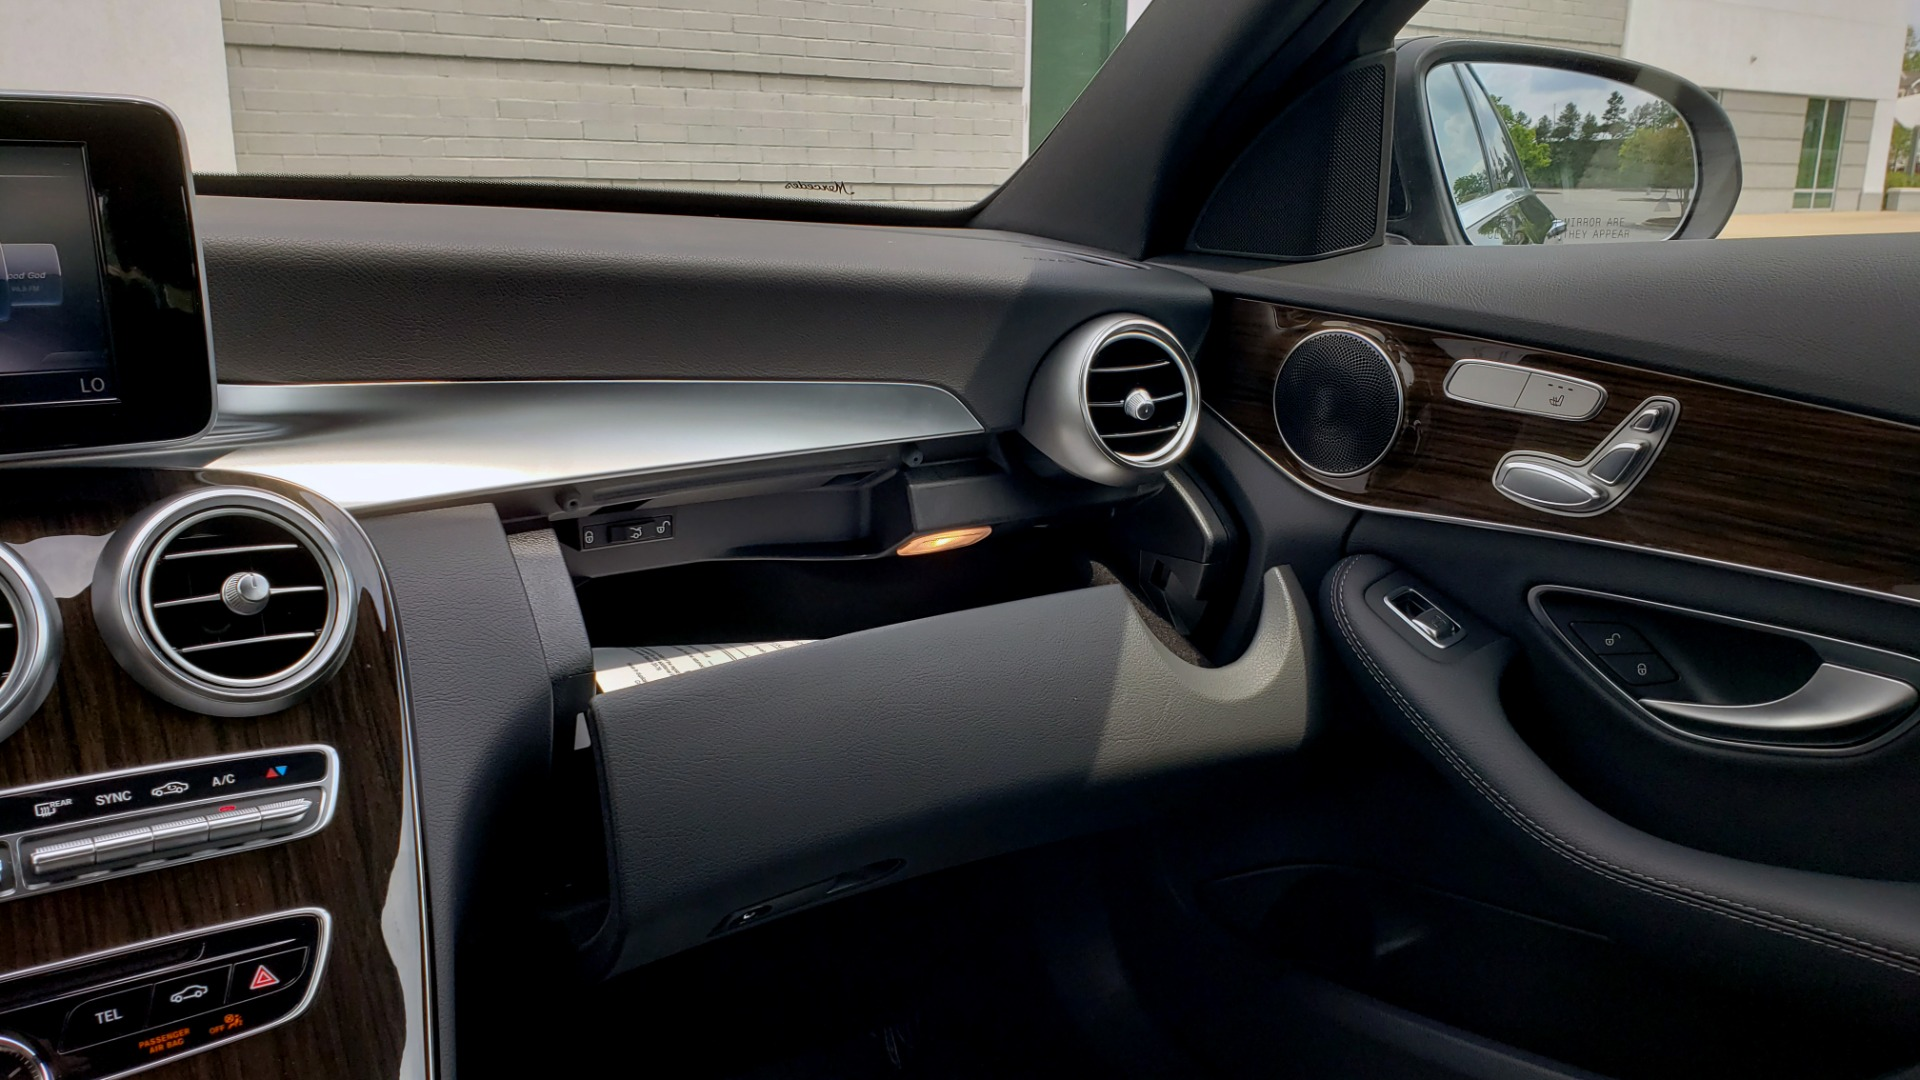 Used 2018 Mercedes-Benz C-CLASS C 300 PREMIUM / HTD STS / APPLE CARPLAY / 18IN WHEELS / REARVIEW for sale $24,795 at Formula Imports in Charlotte NC 28227 55